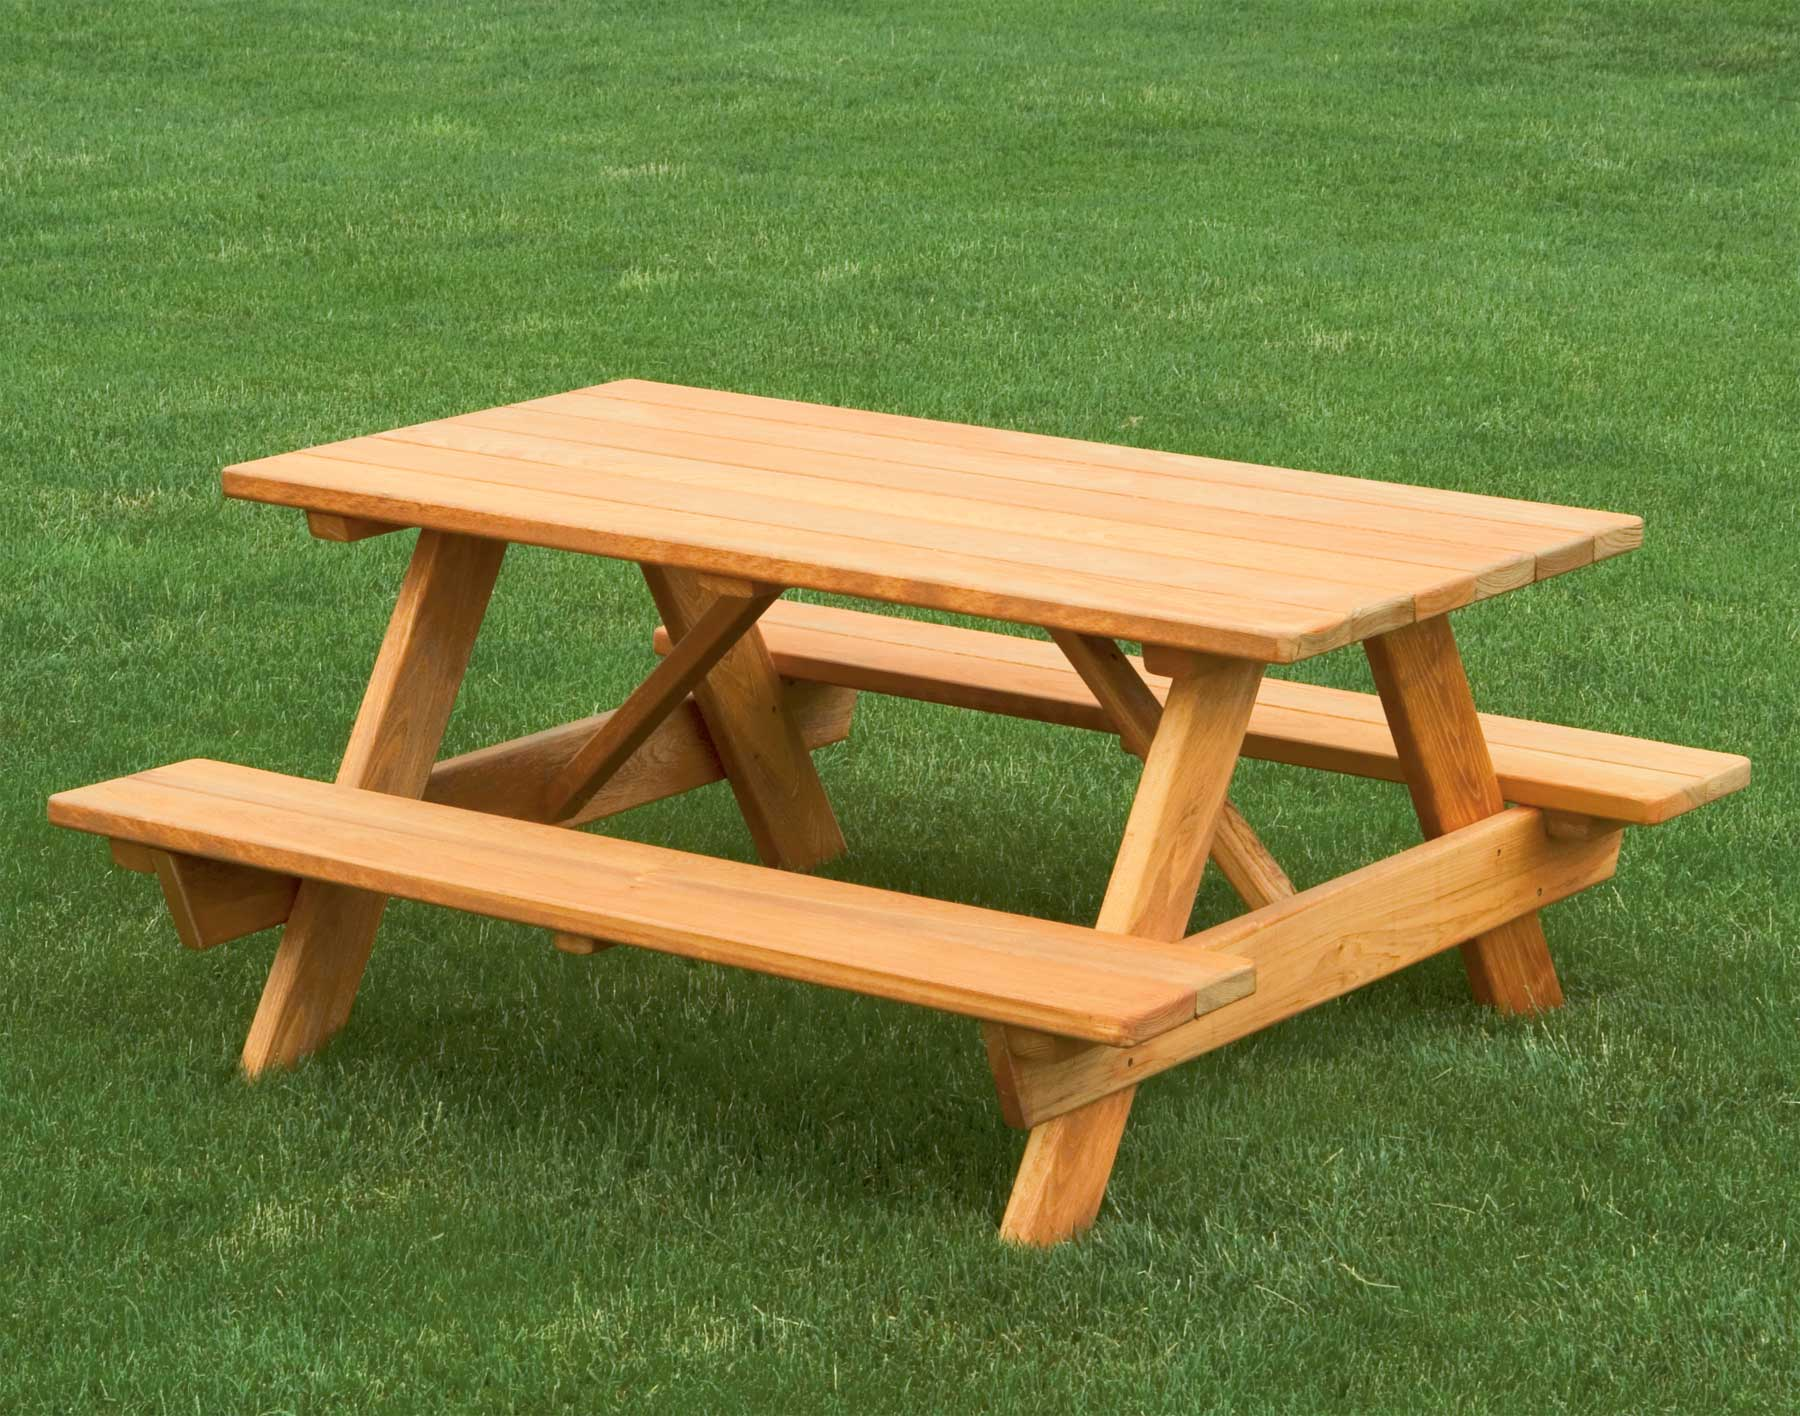 Woodworking Projects That Sell Well